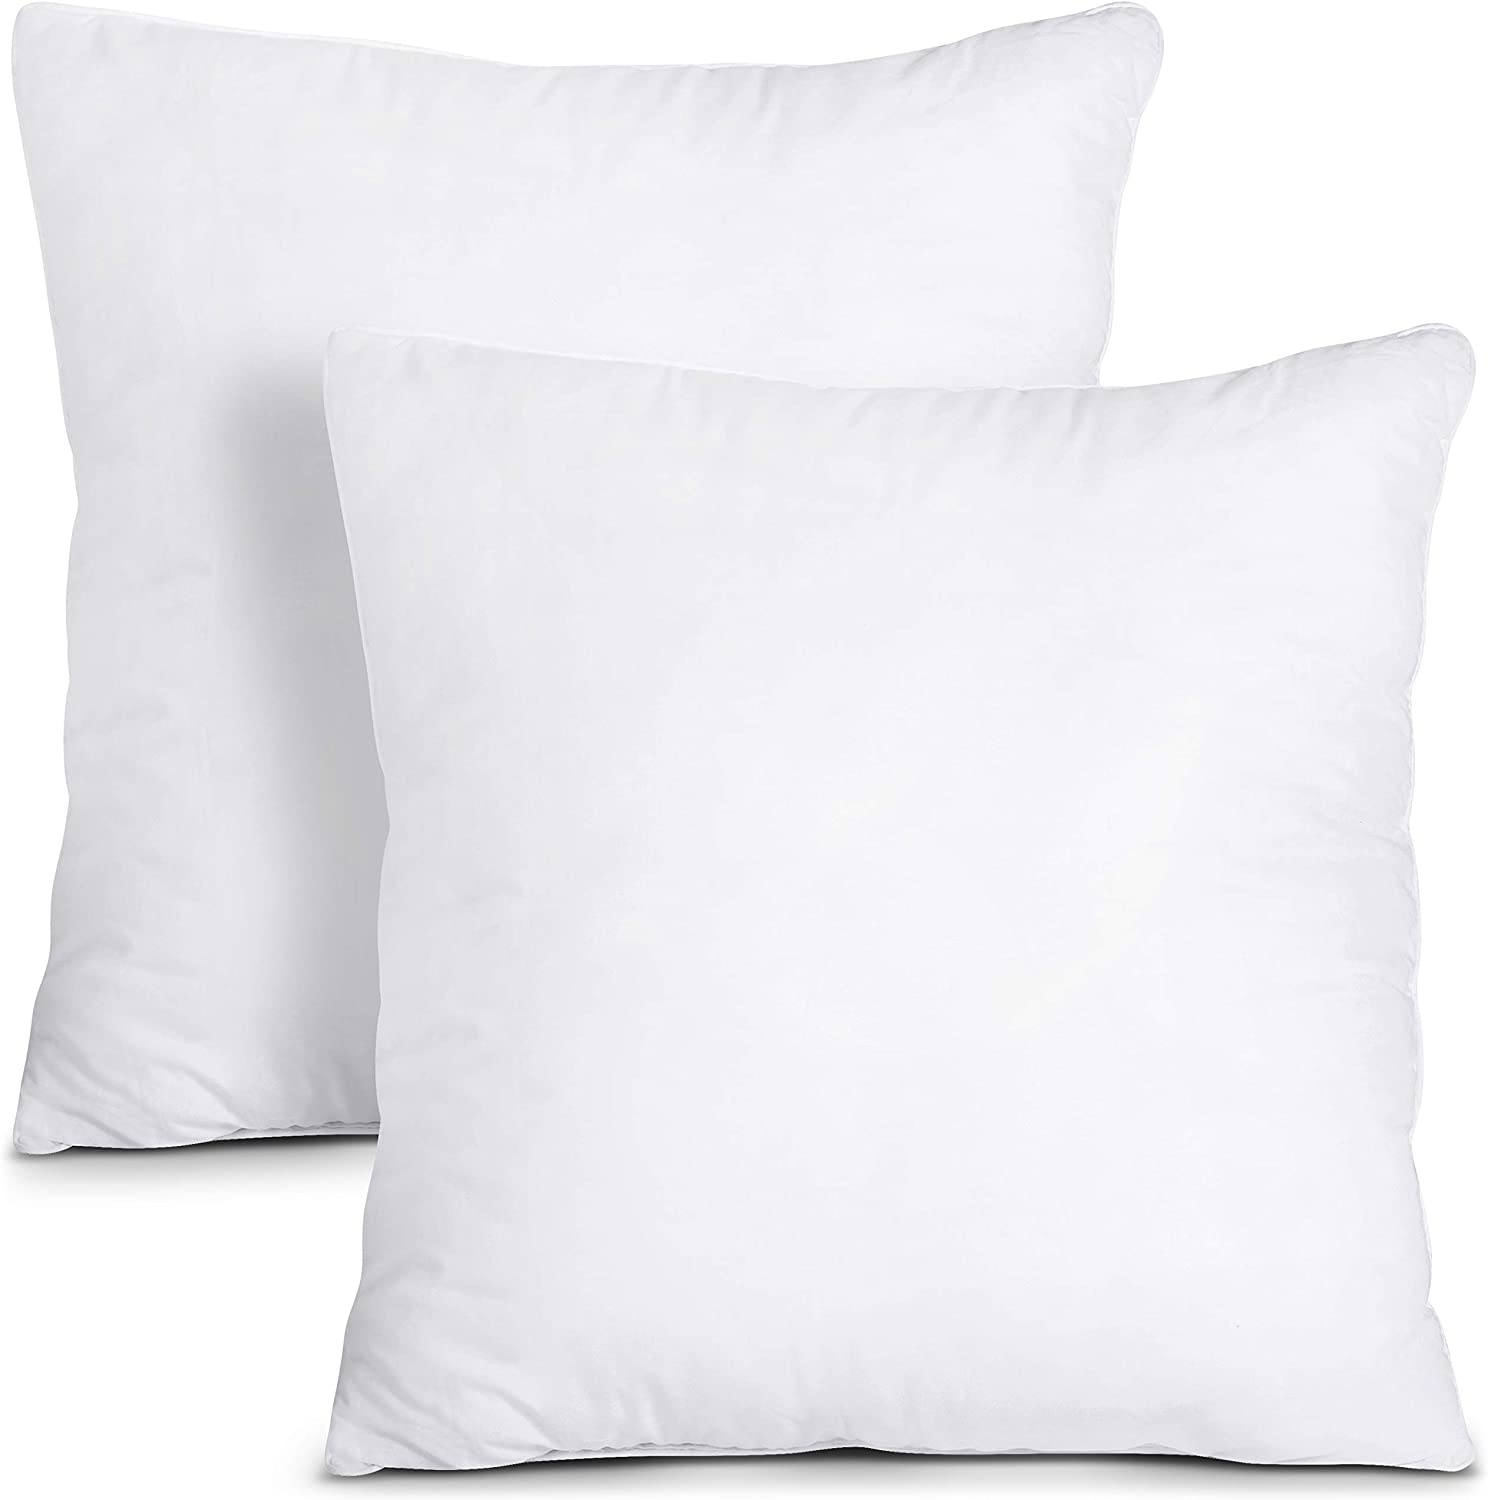 Amazon Com Utopia Bedding Throw Pillows Insert Pack Of 2 White